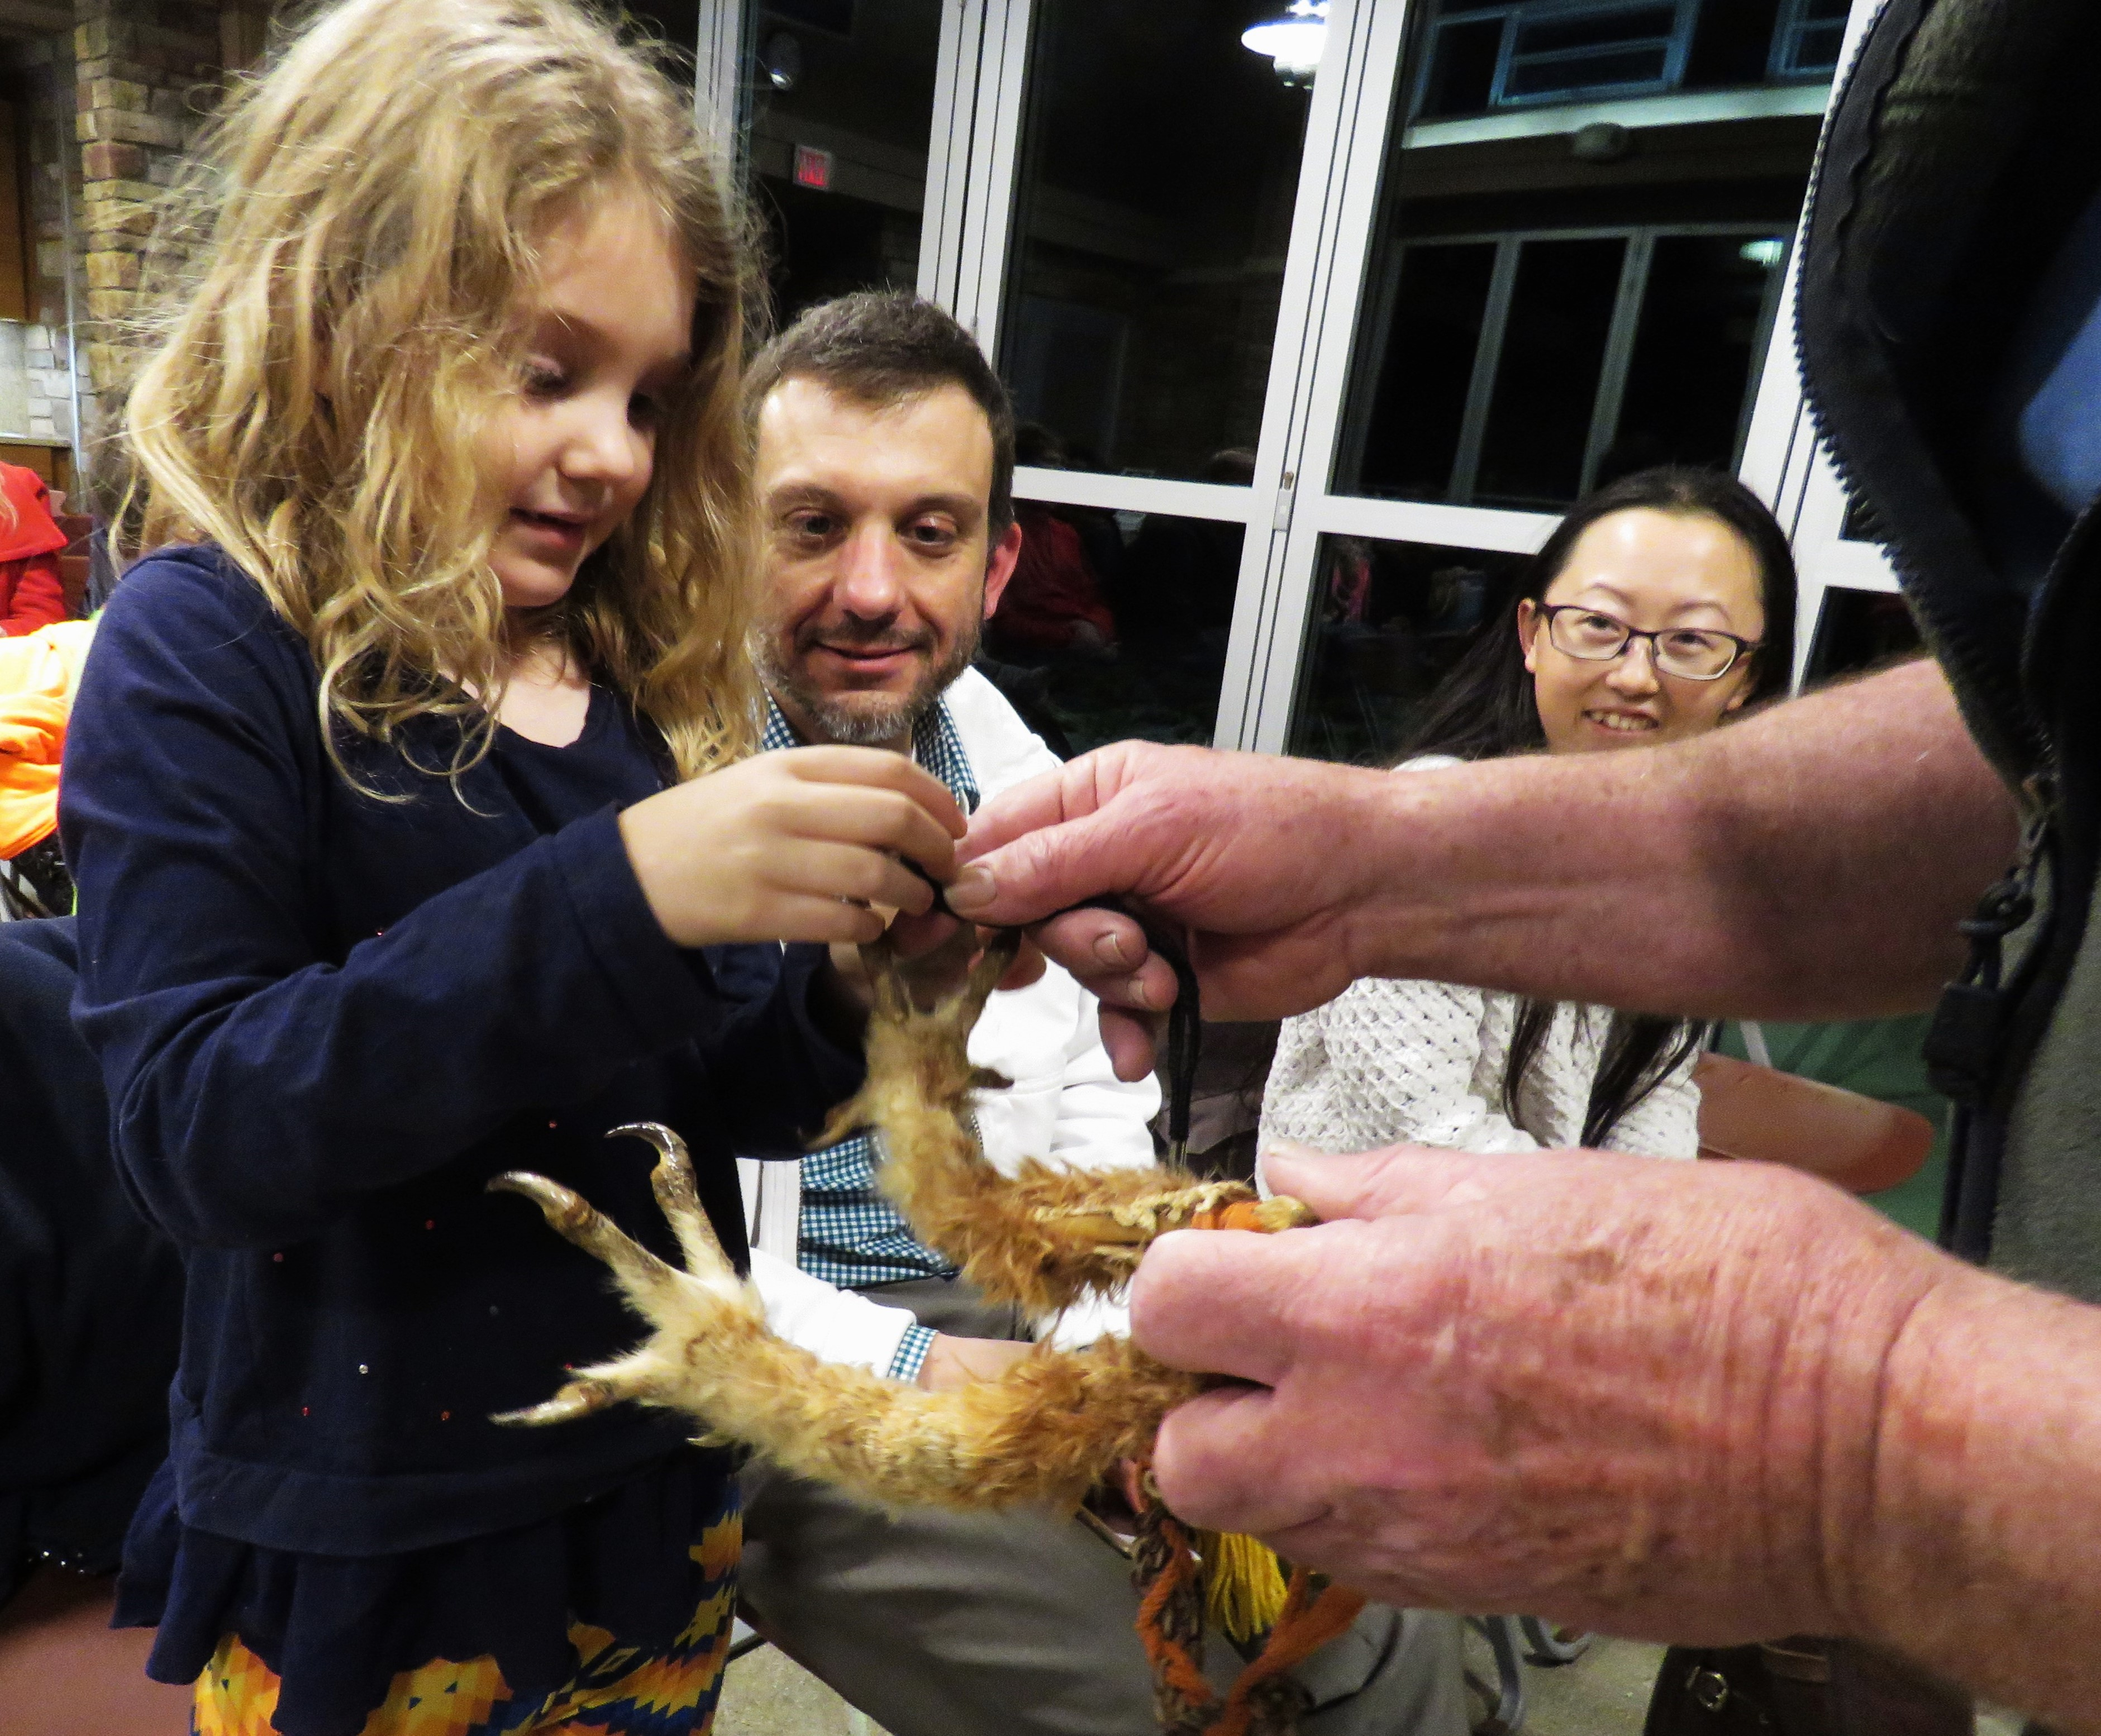 A young girl touches the talon of a great horned owl.